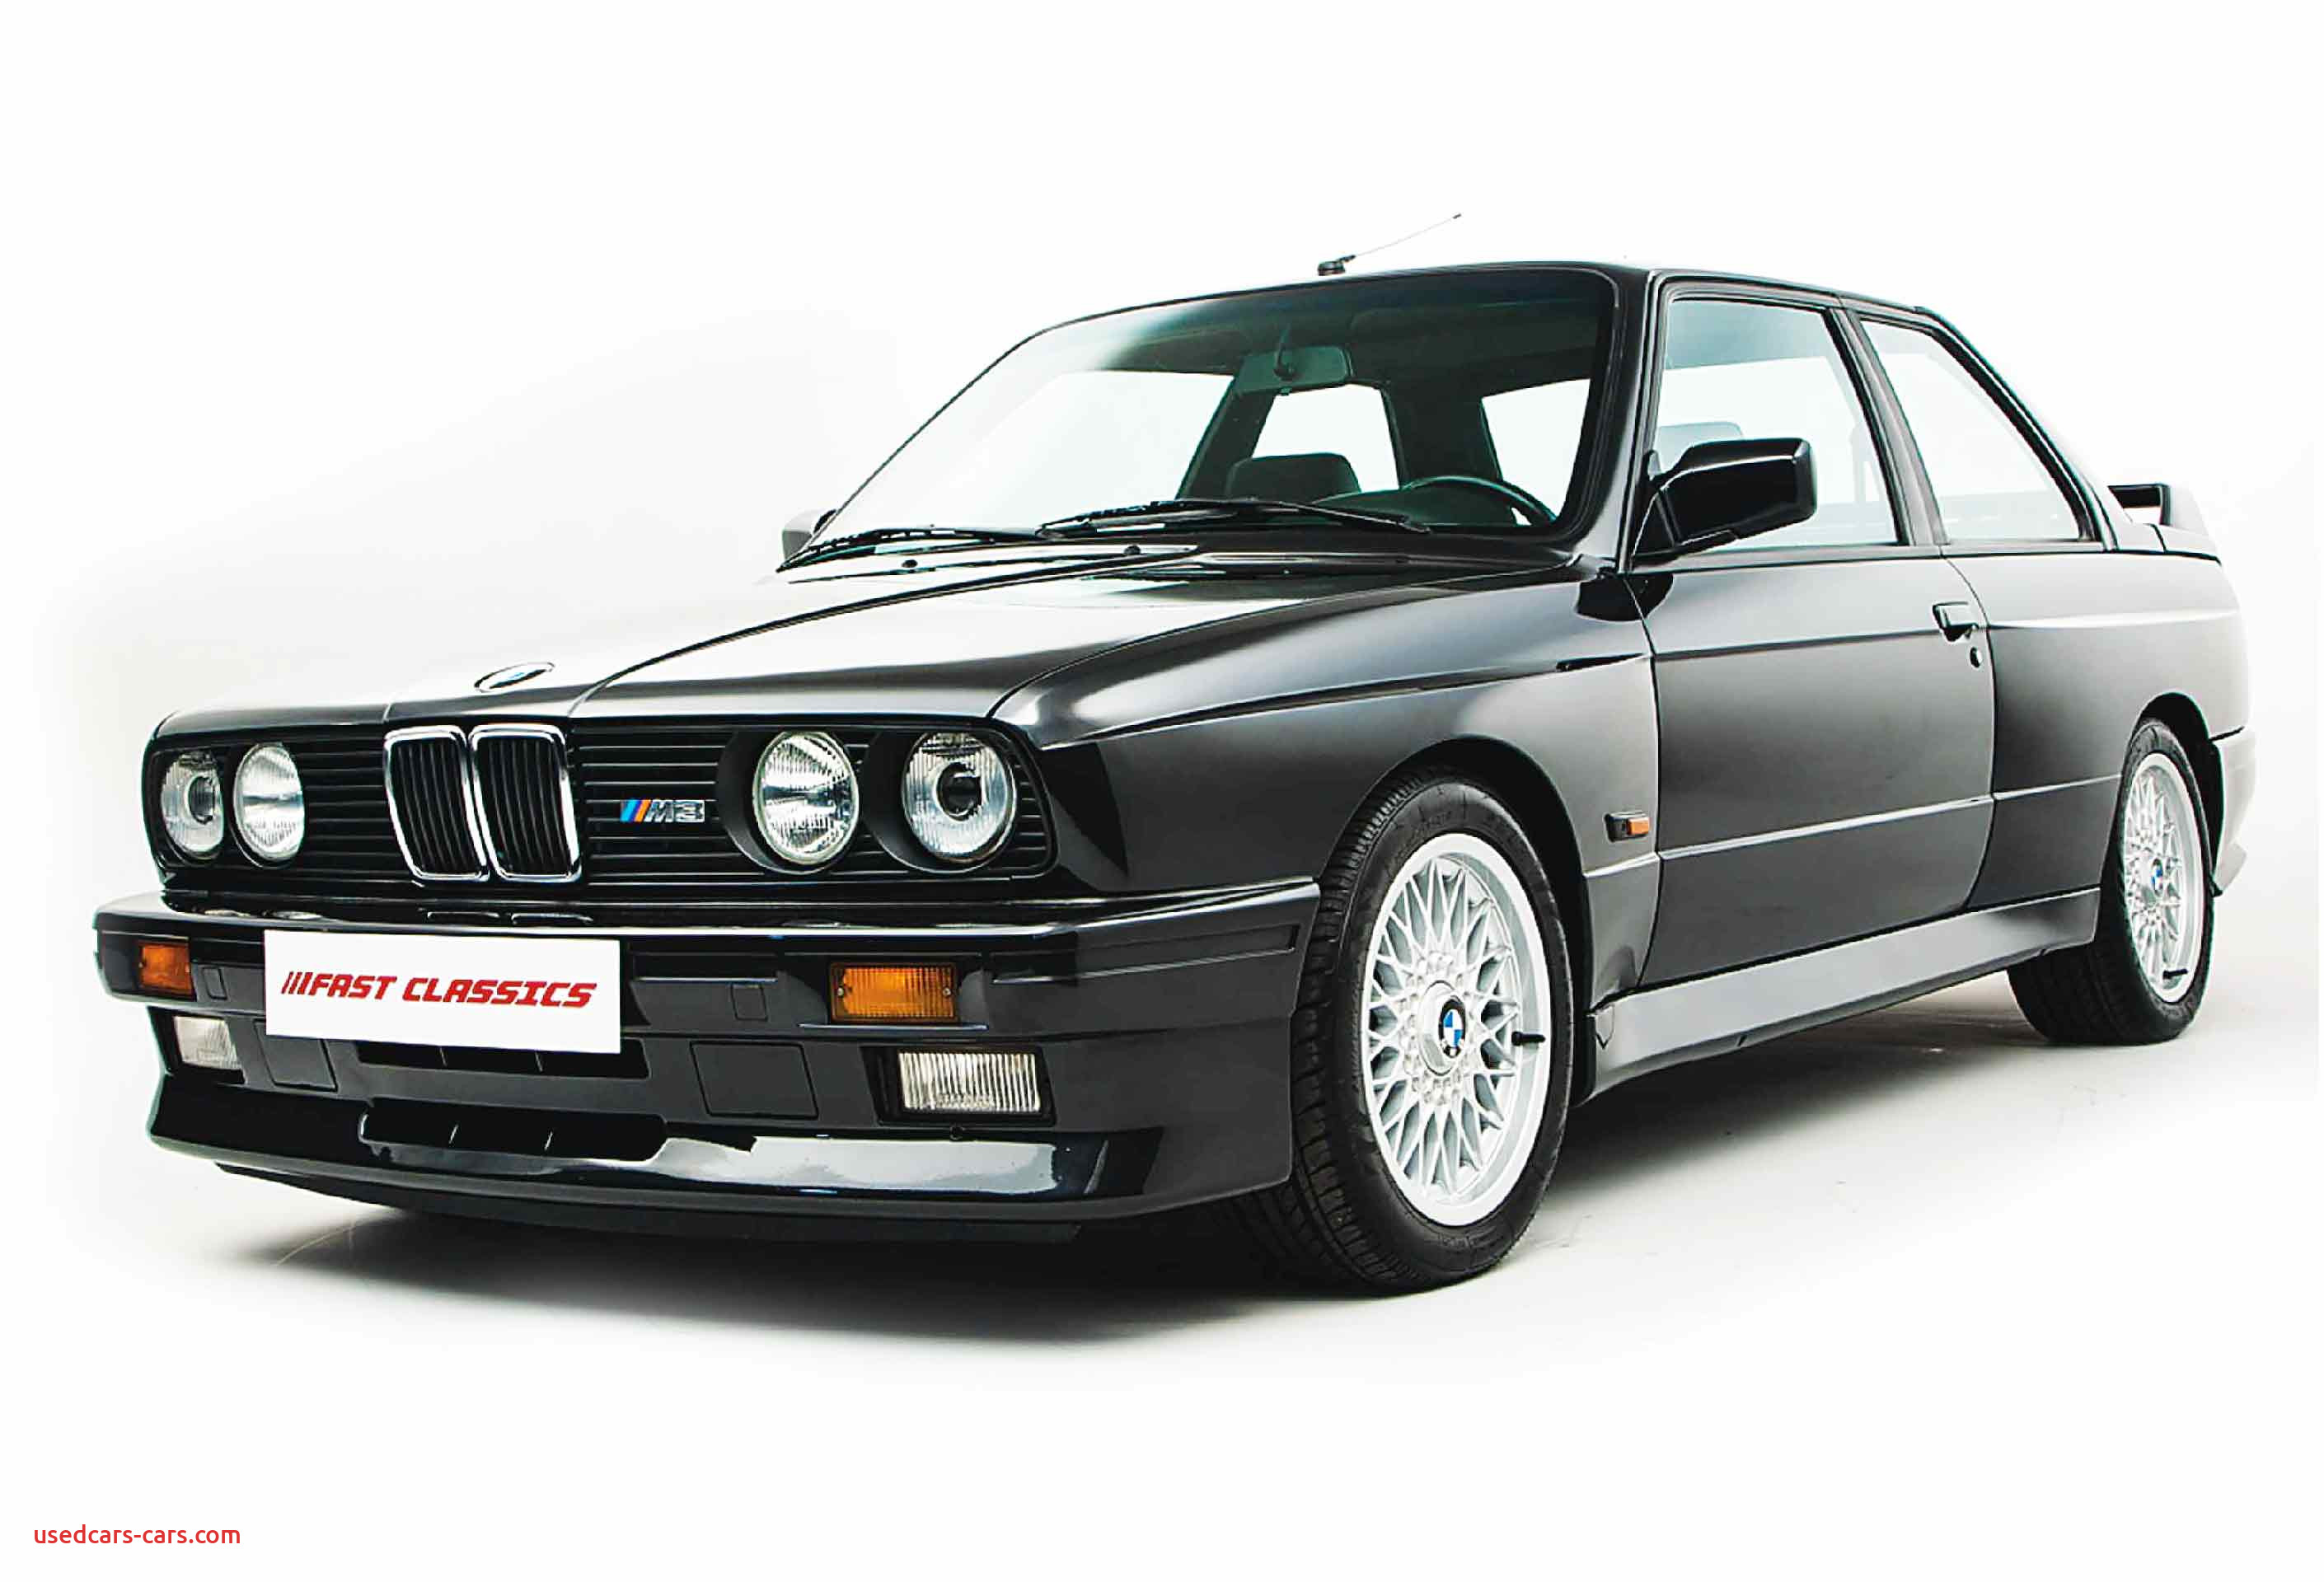 Bmw M3 1988 Awesome Market Watch Motorsport Derived Bmw M3 E30 Drive My Blogs